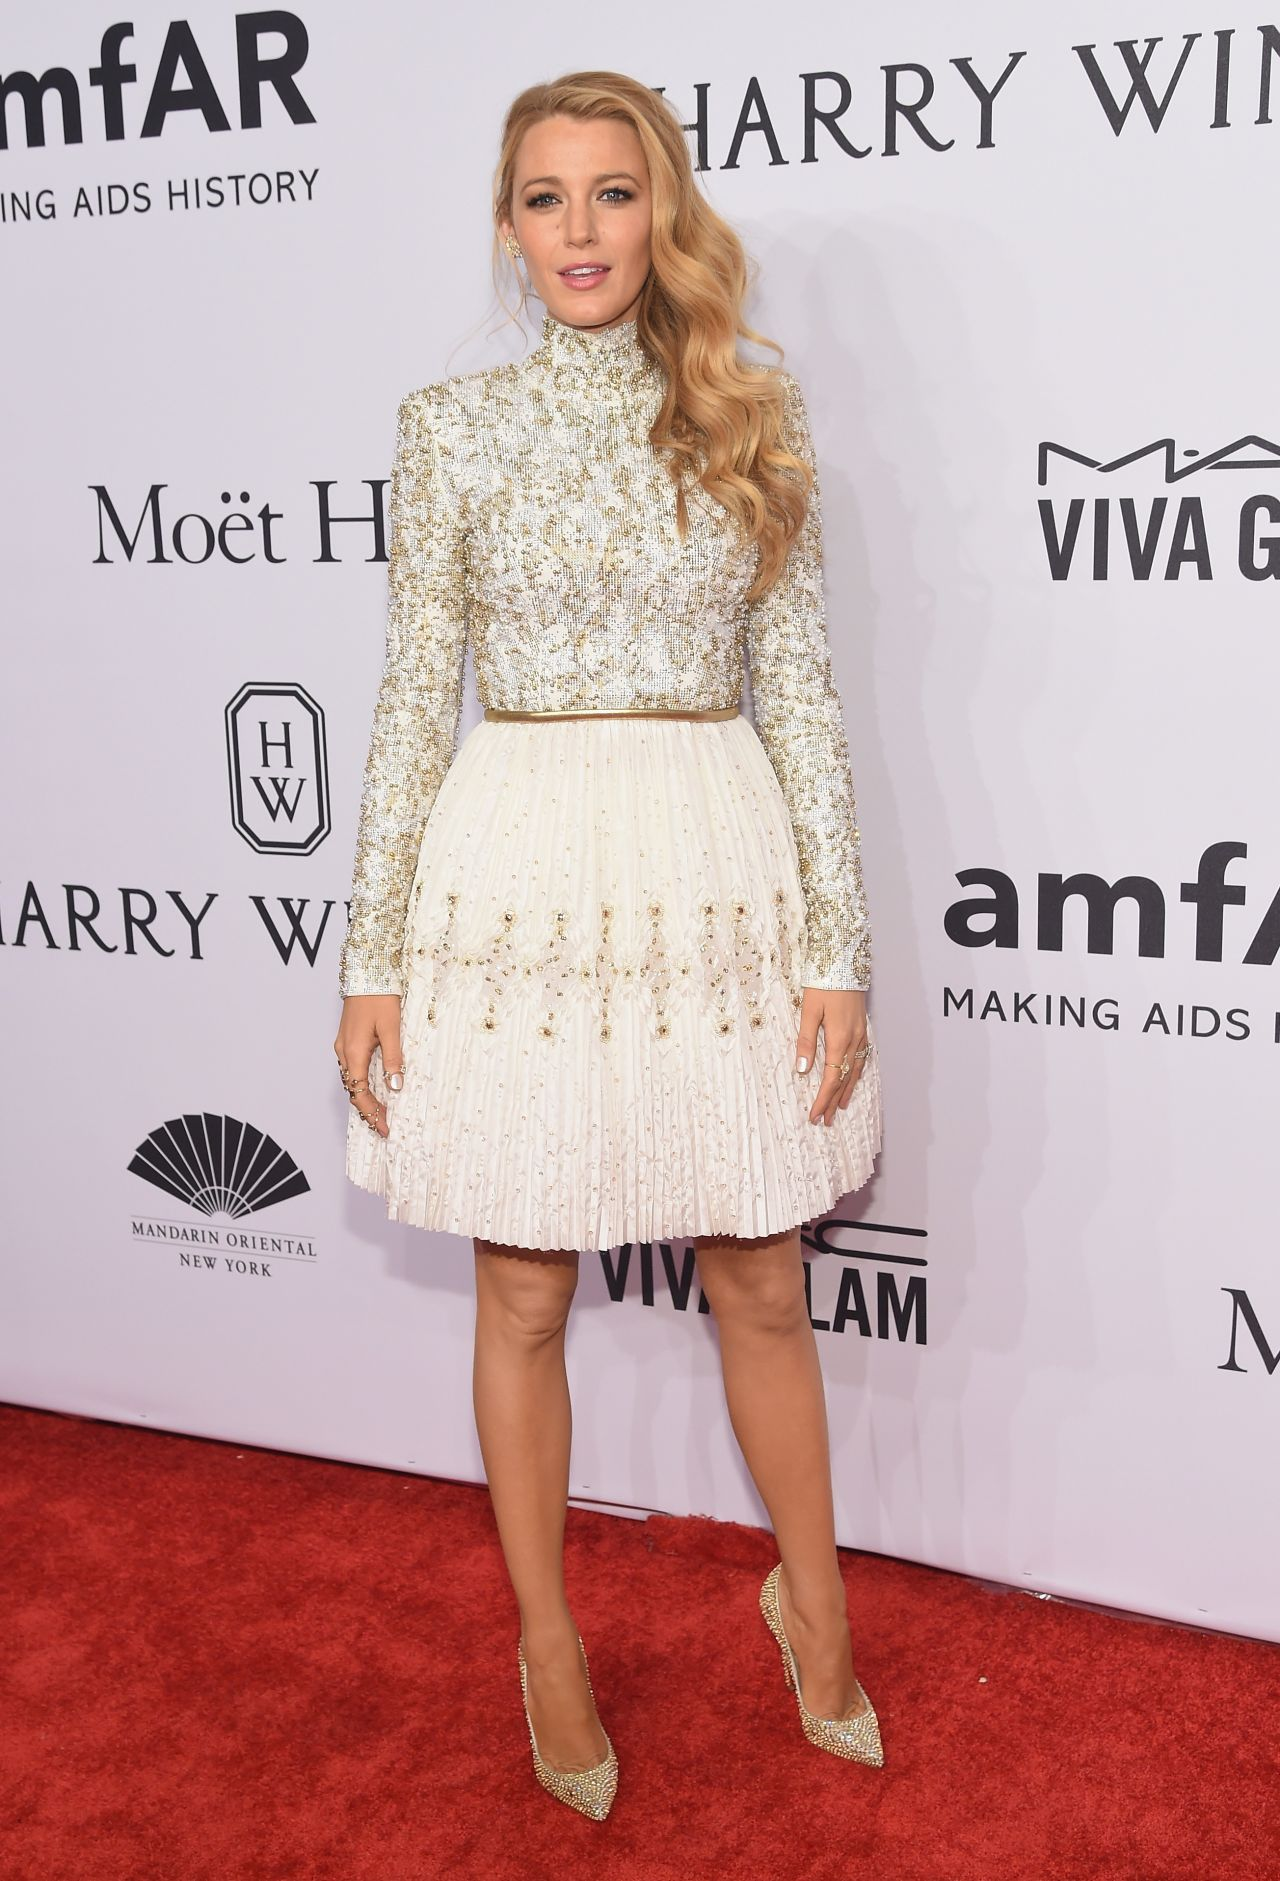 blake-lively-2016-amfar-new-york-gala-in-new-york-city-ny-1-1